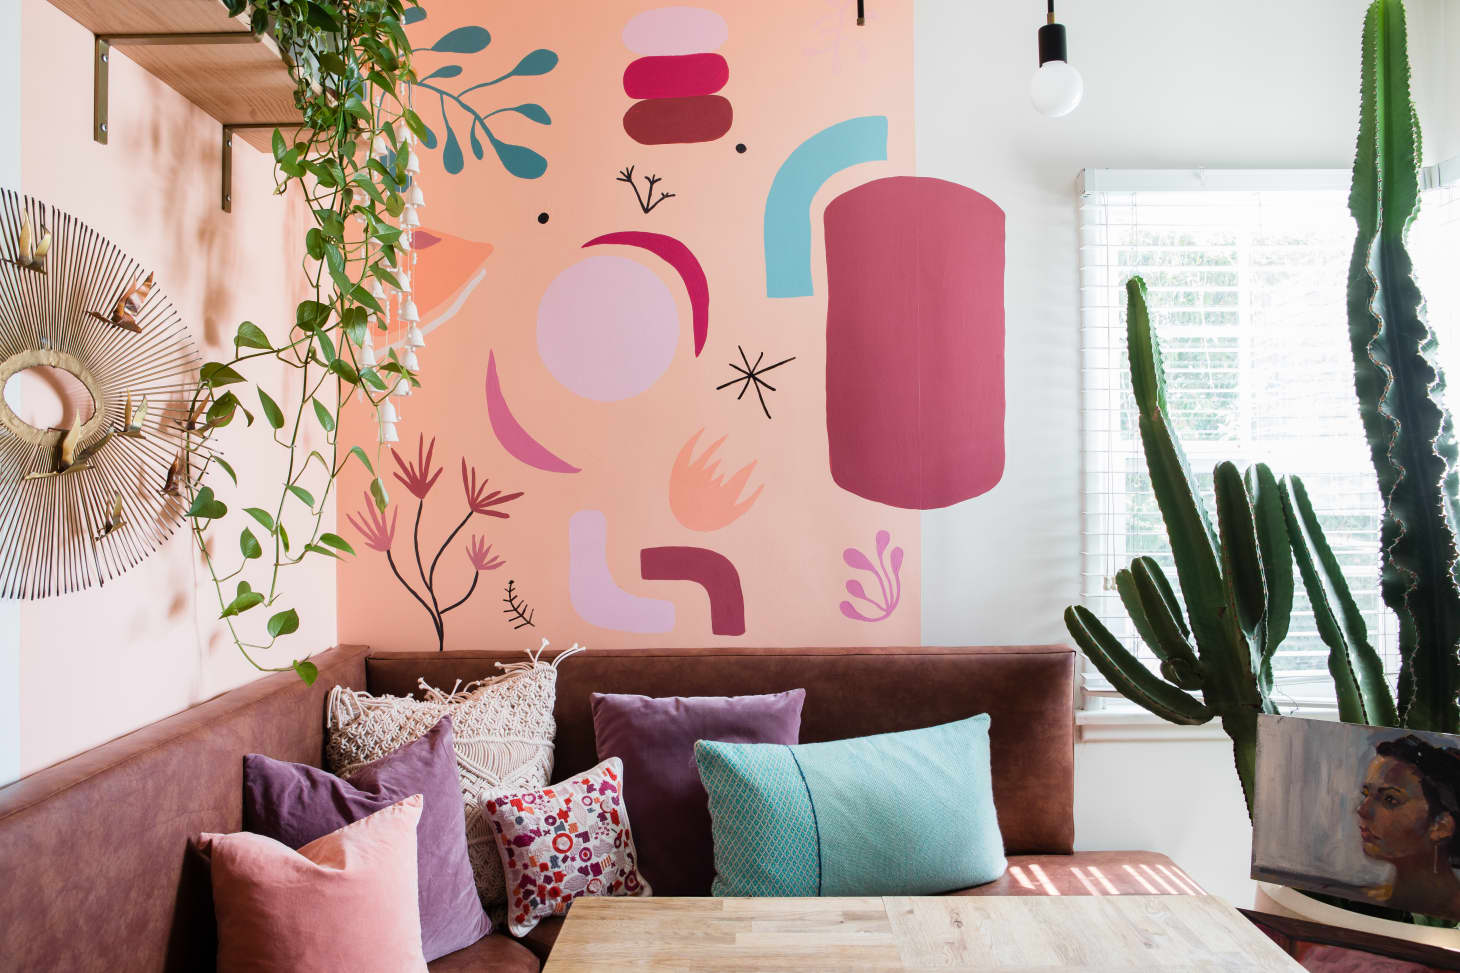 Wall Mural Diy Decor Ideas Apartment Therapy